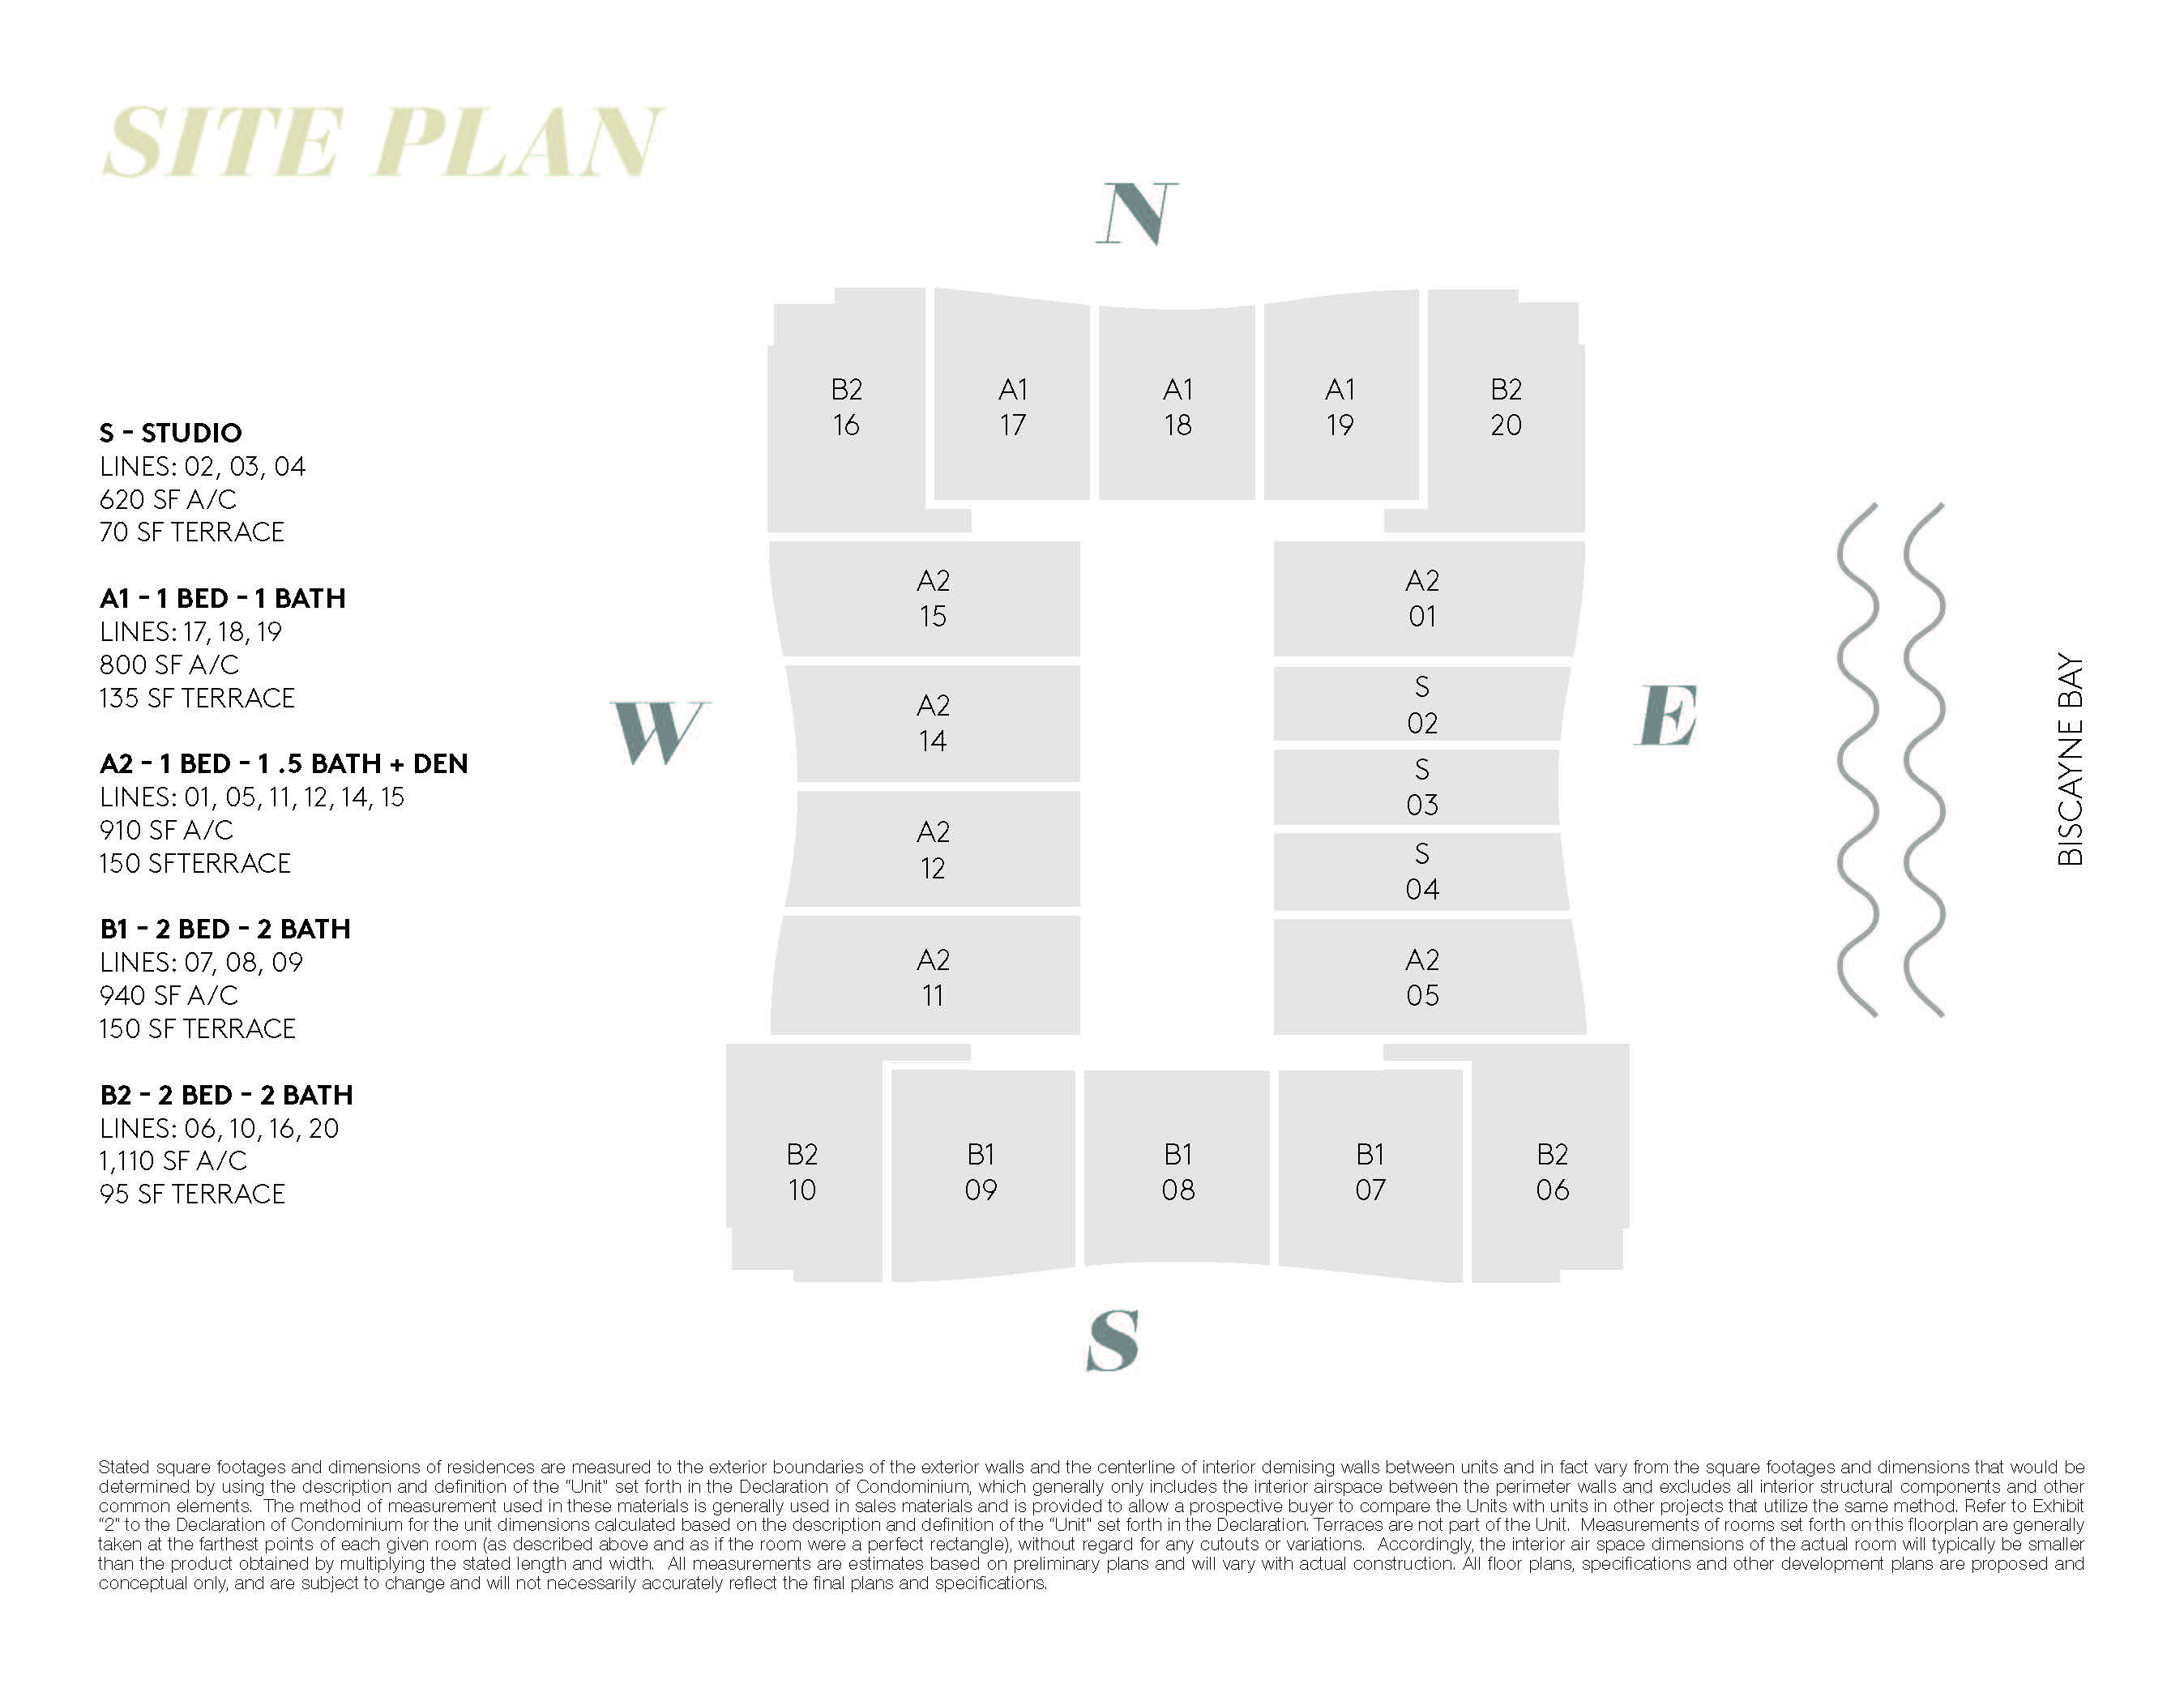 Canvas Site Plan